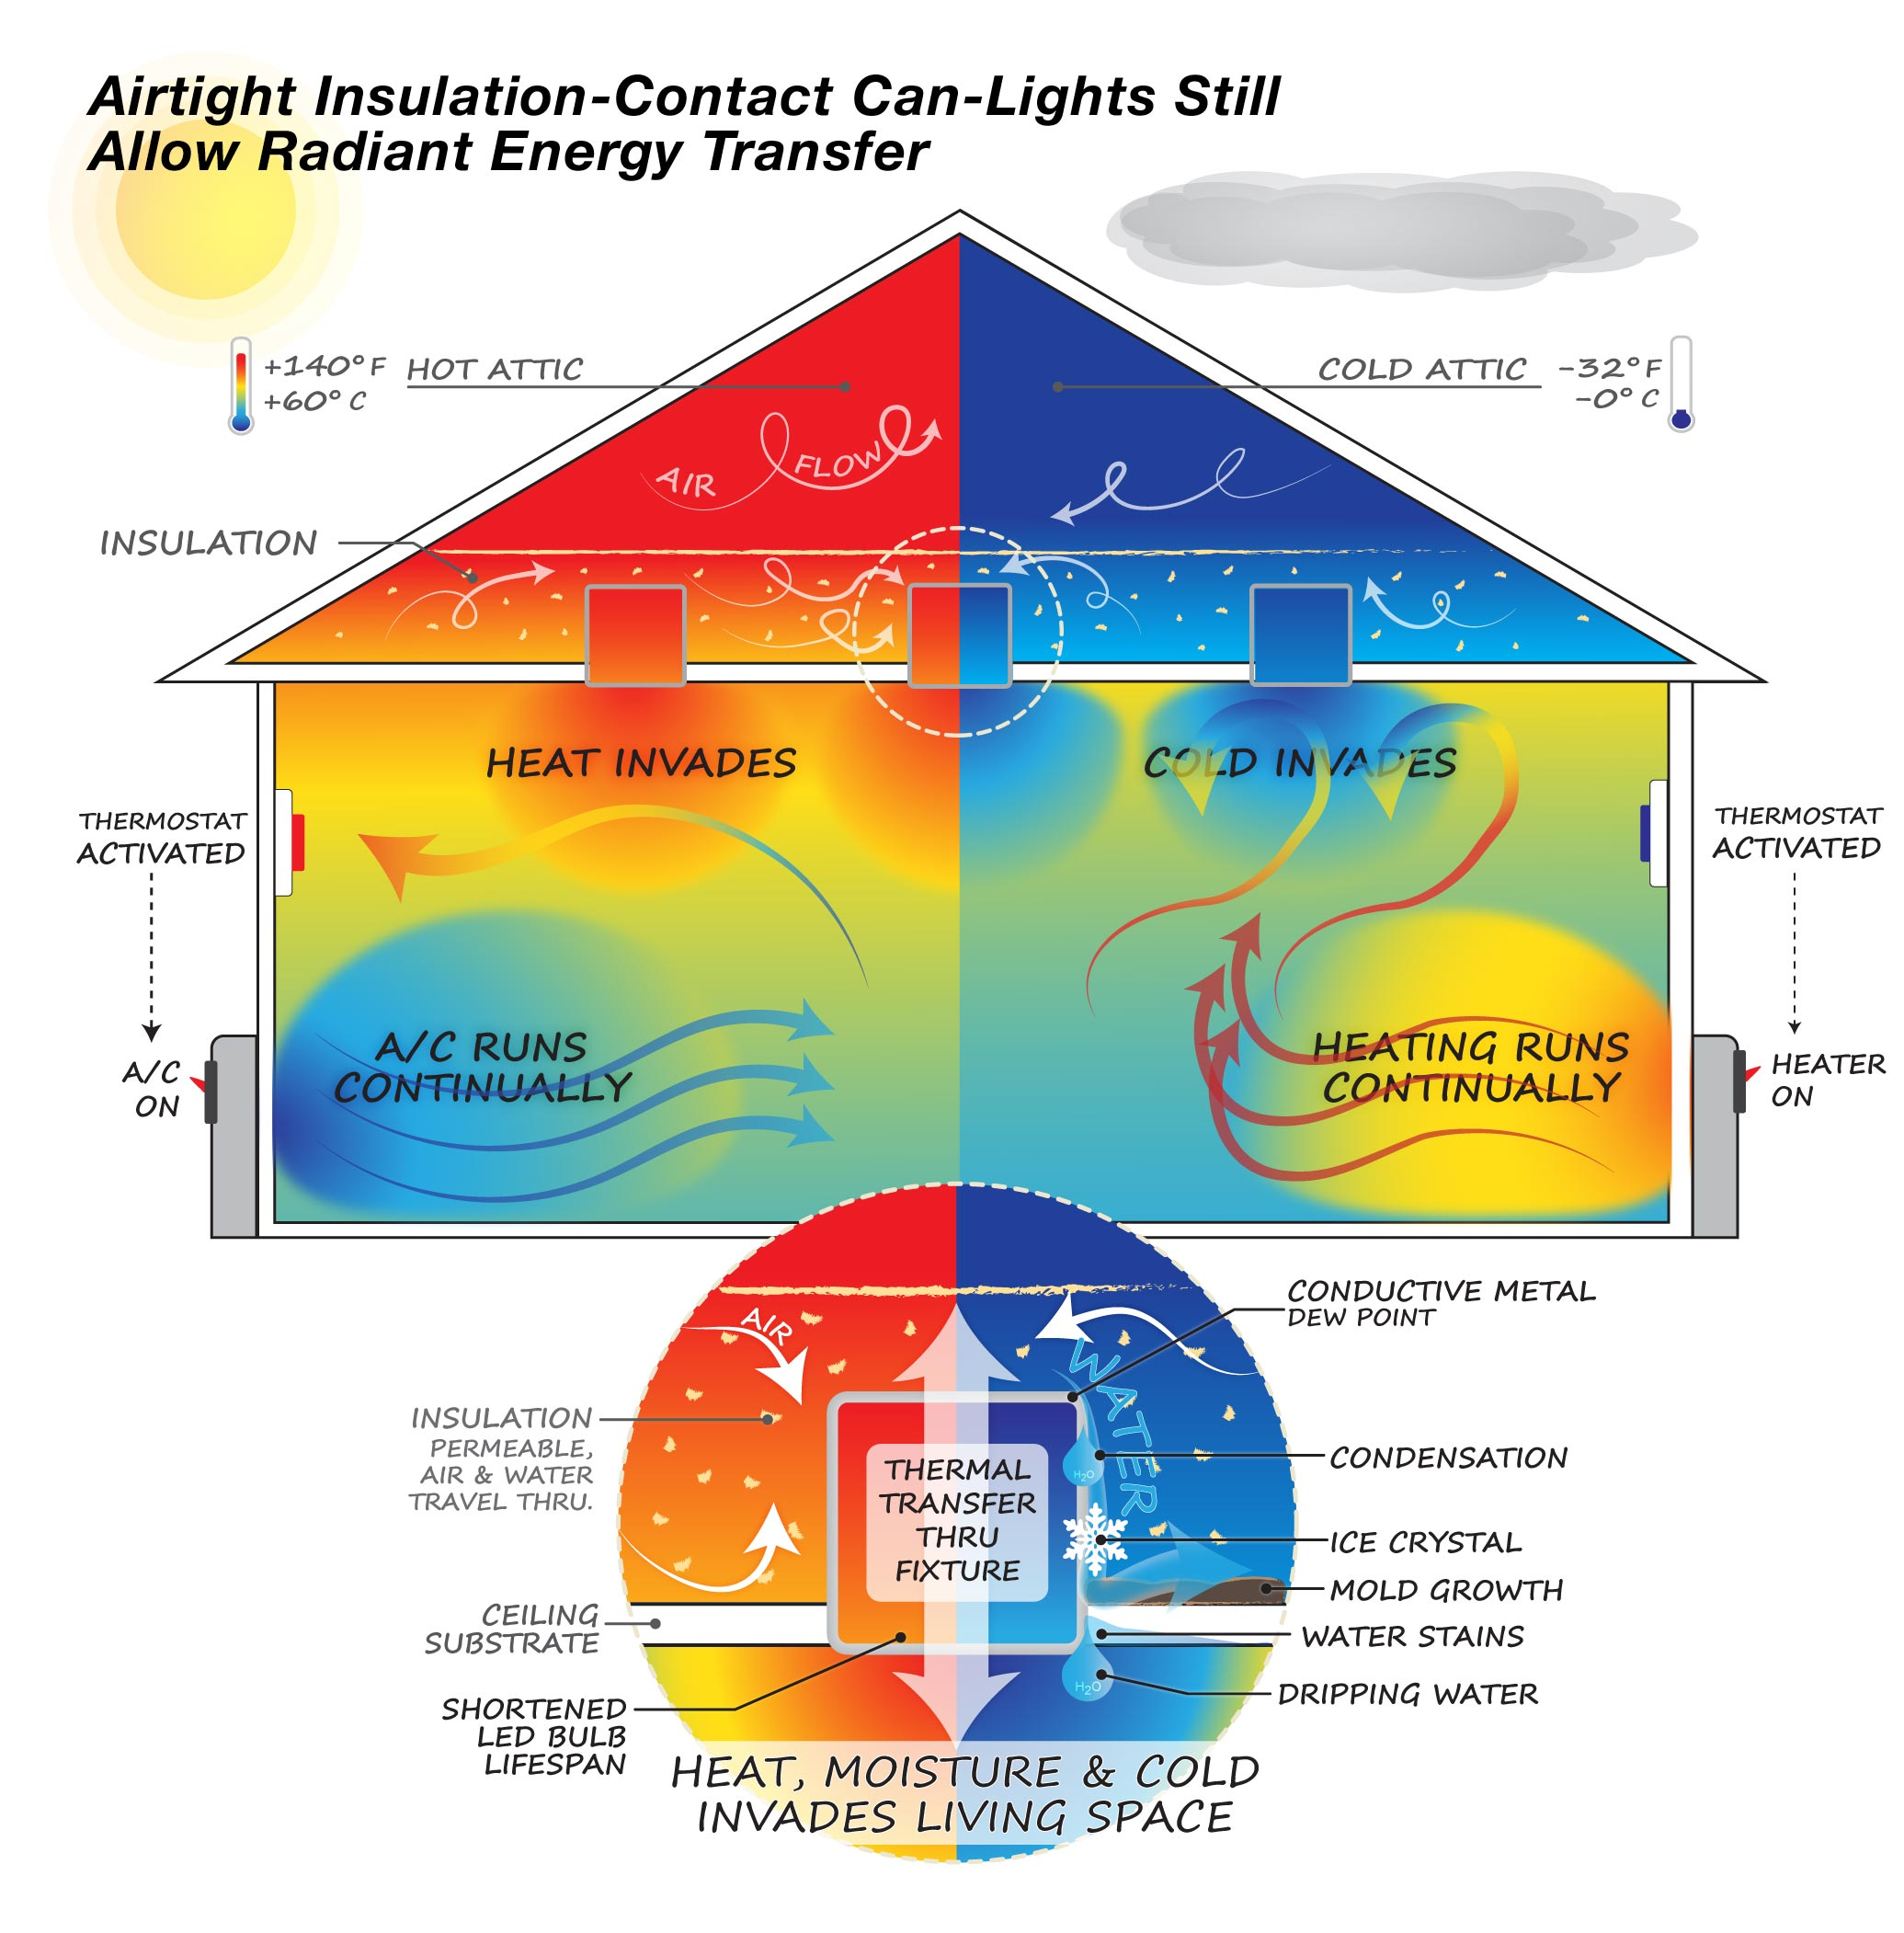 Airtight IC Can-Lights still allow radiant energy transfer through your ceiling!